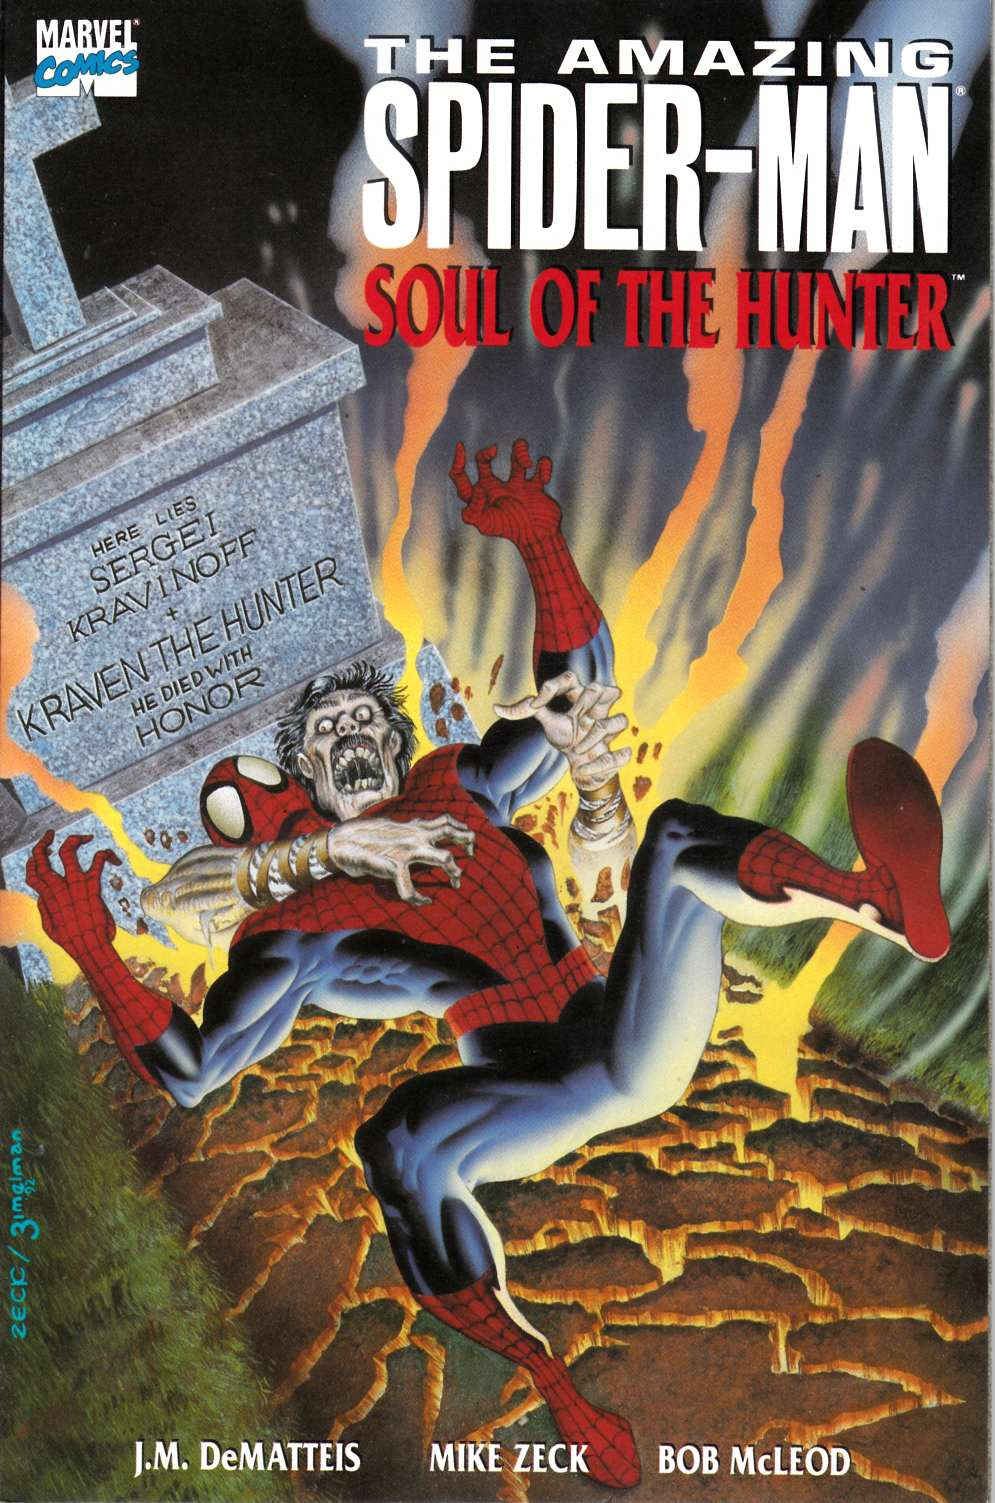 Amazing Spider-Man Soul of the Hunter (One Shot) Near Mint (9.4) [Marvel Comic]